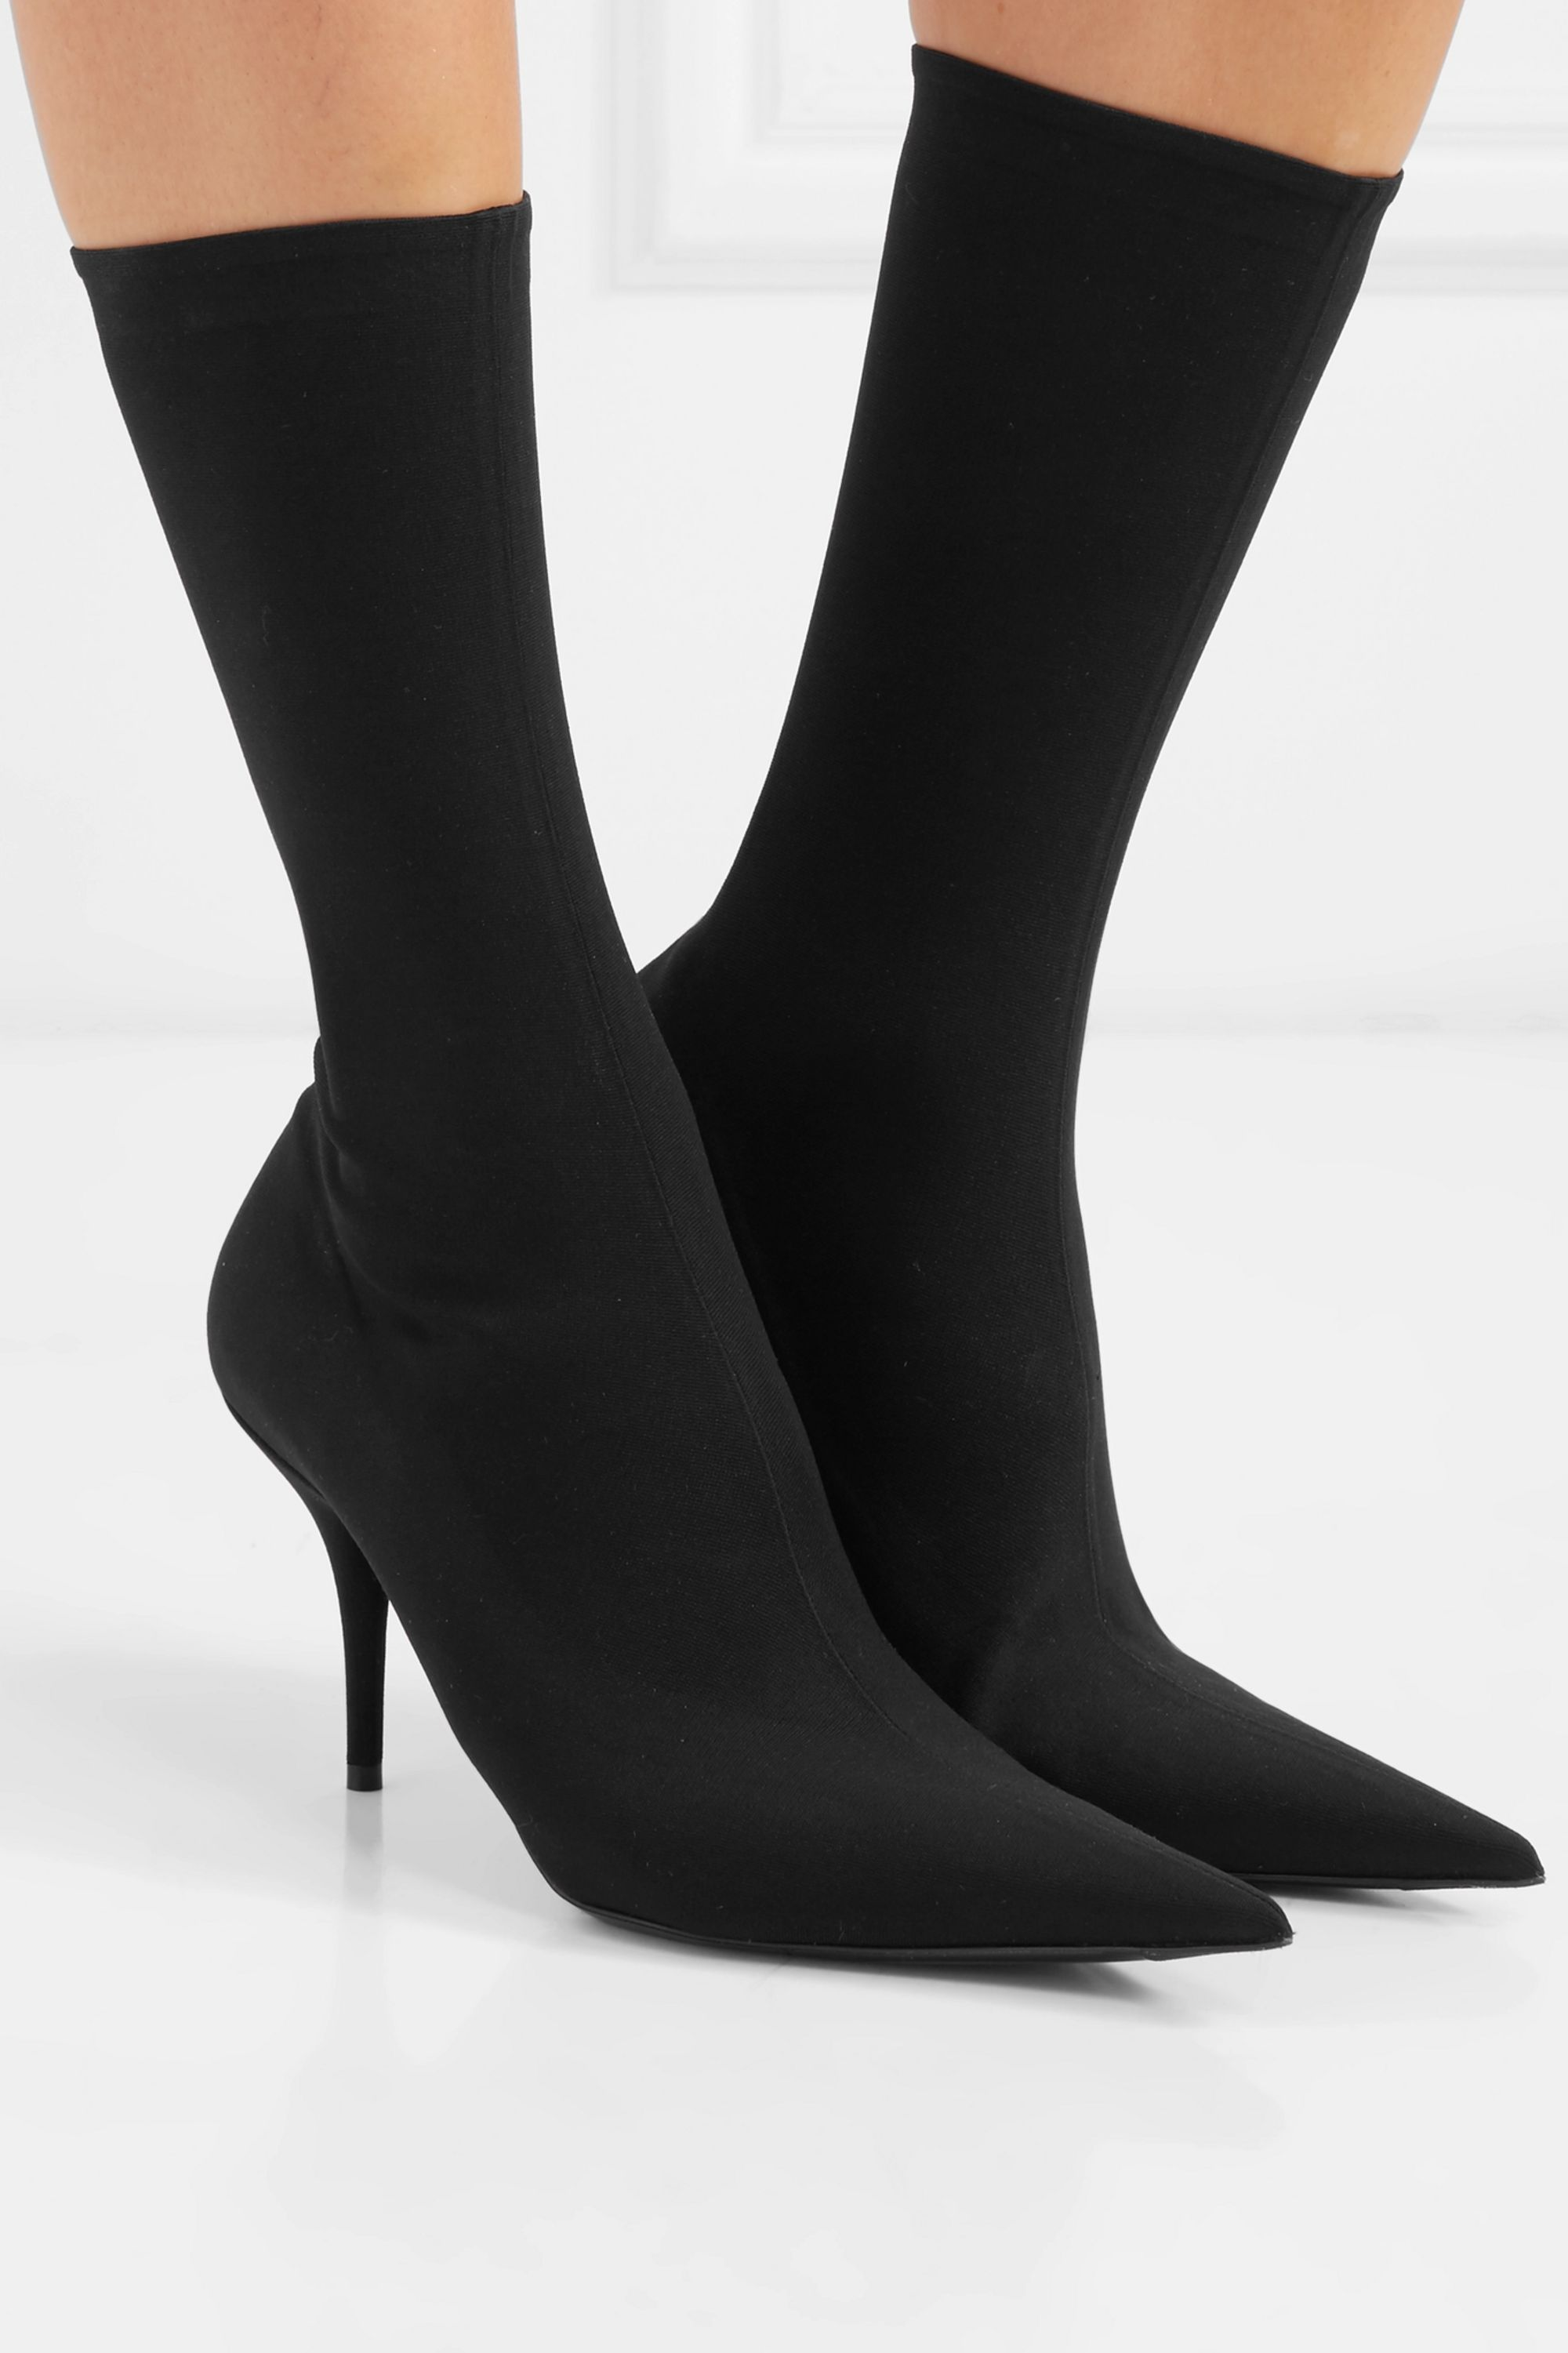 Knife spandex sock boots by BALENCIAGA, available on net-a-porter.com for $1290 Kim Kardashian Shoes SIMILAR PRODUCT